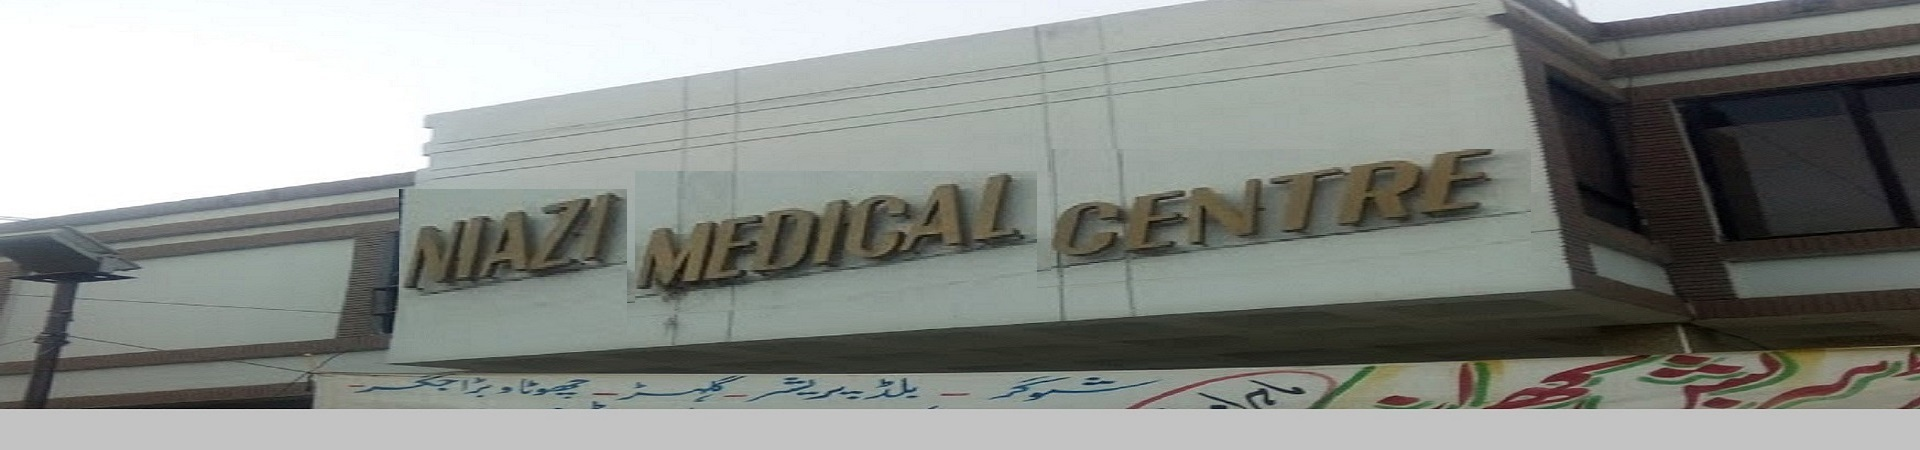 Niazi medical centre cover